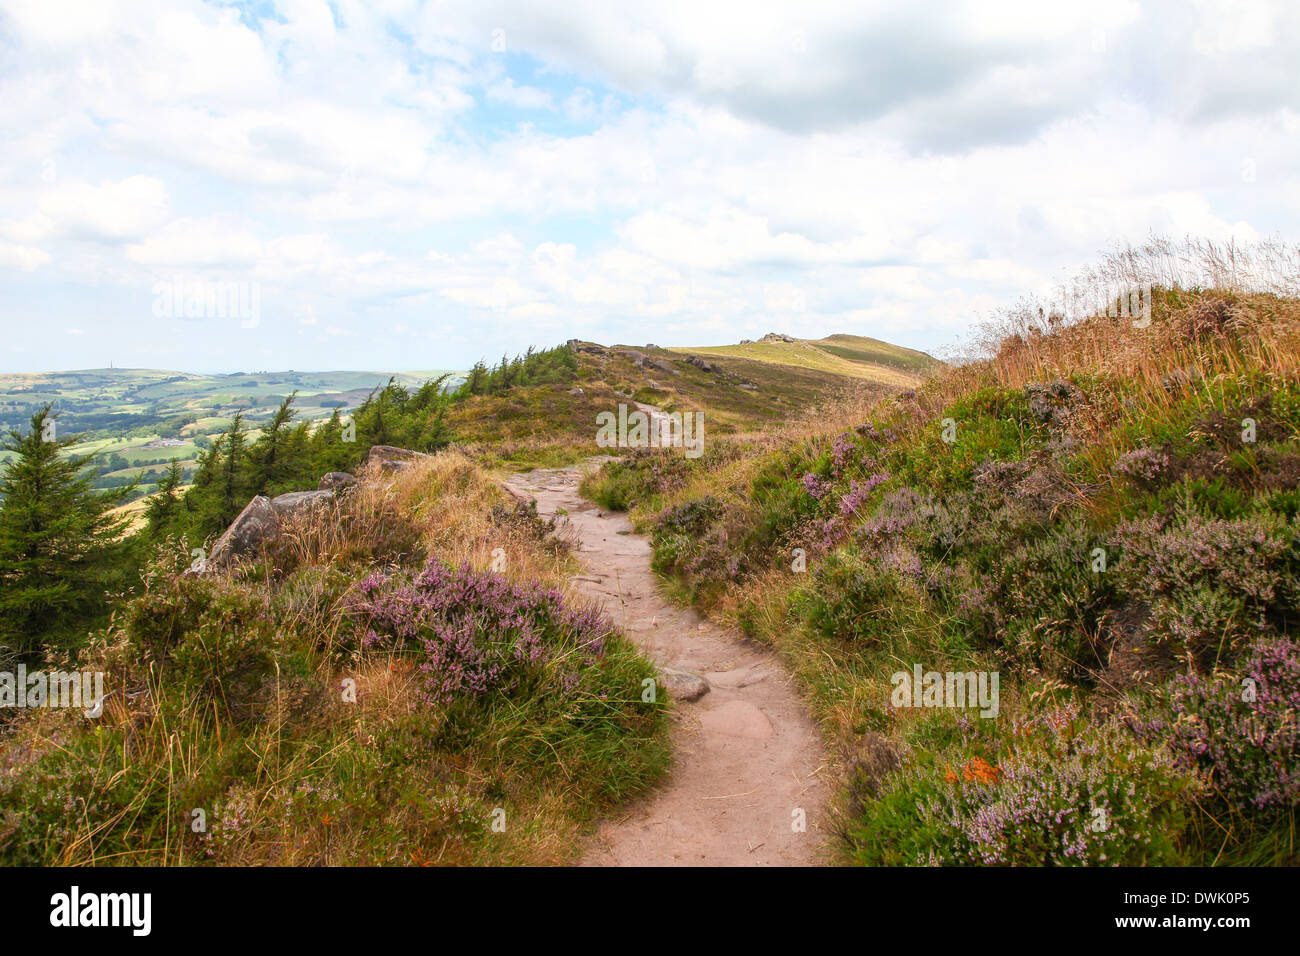 The Roaches Staffordshire Peak District - Stock Image